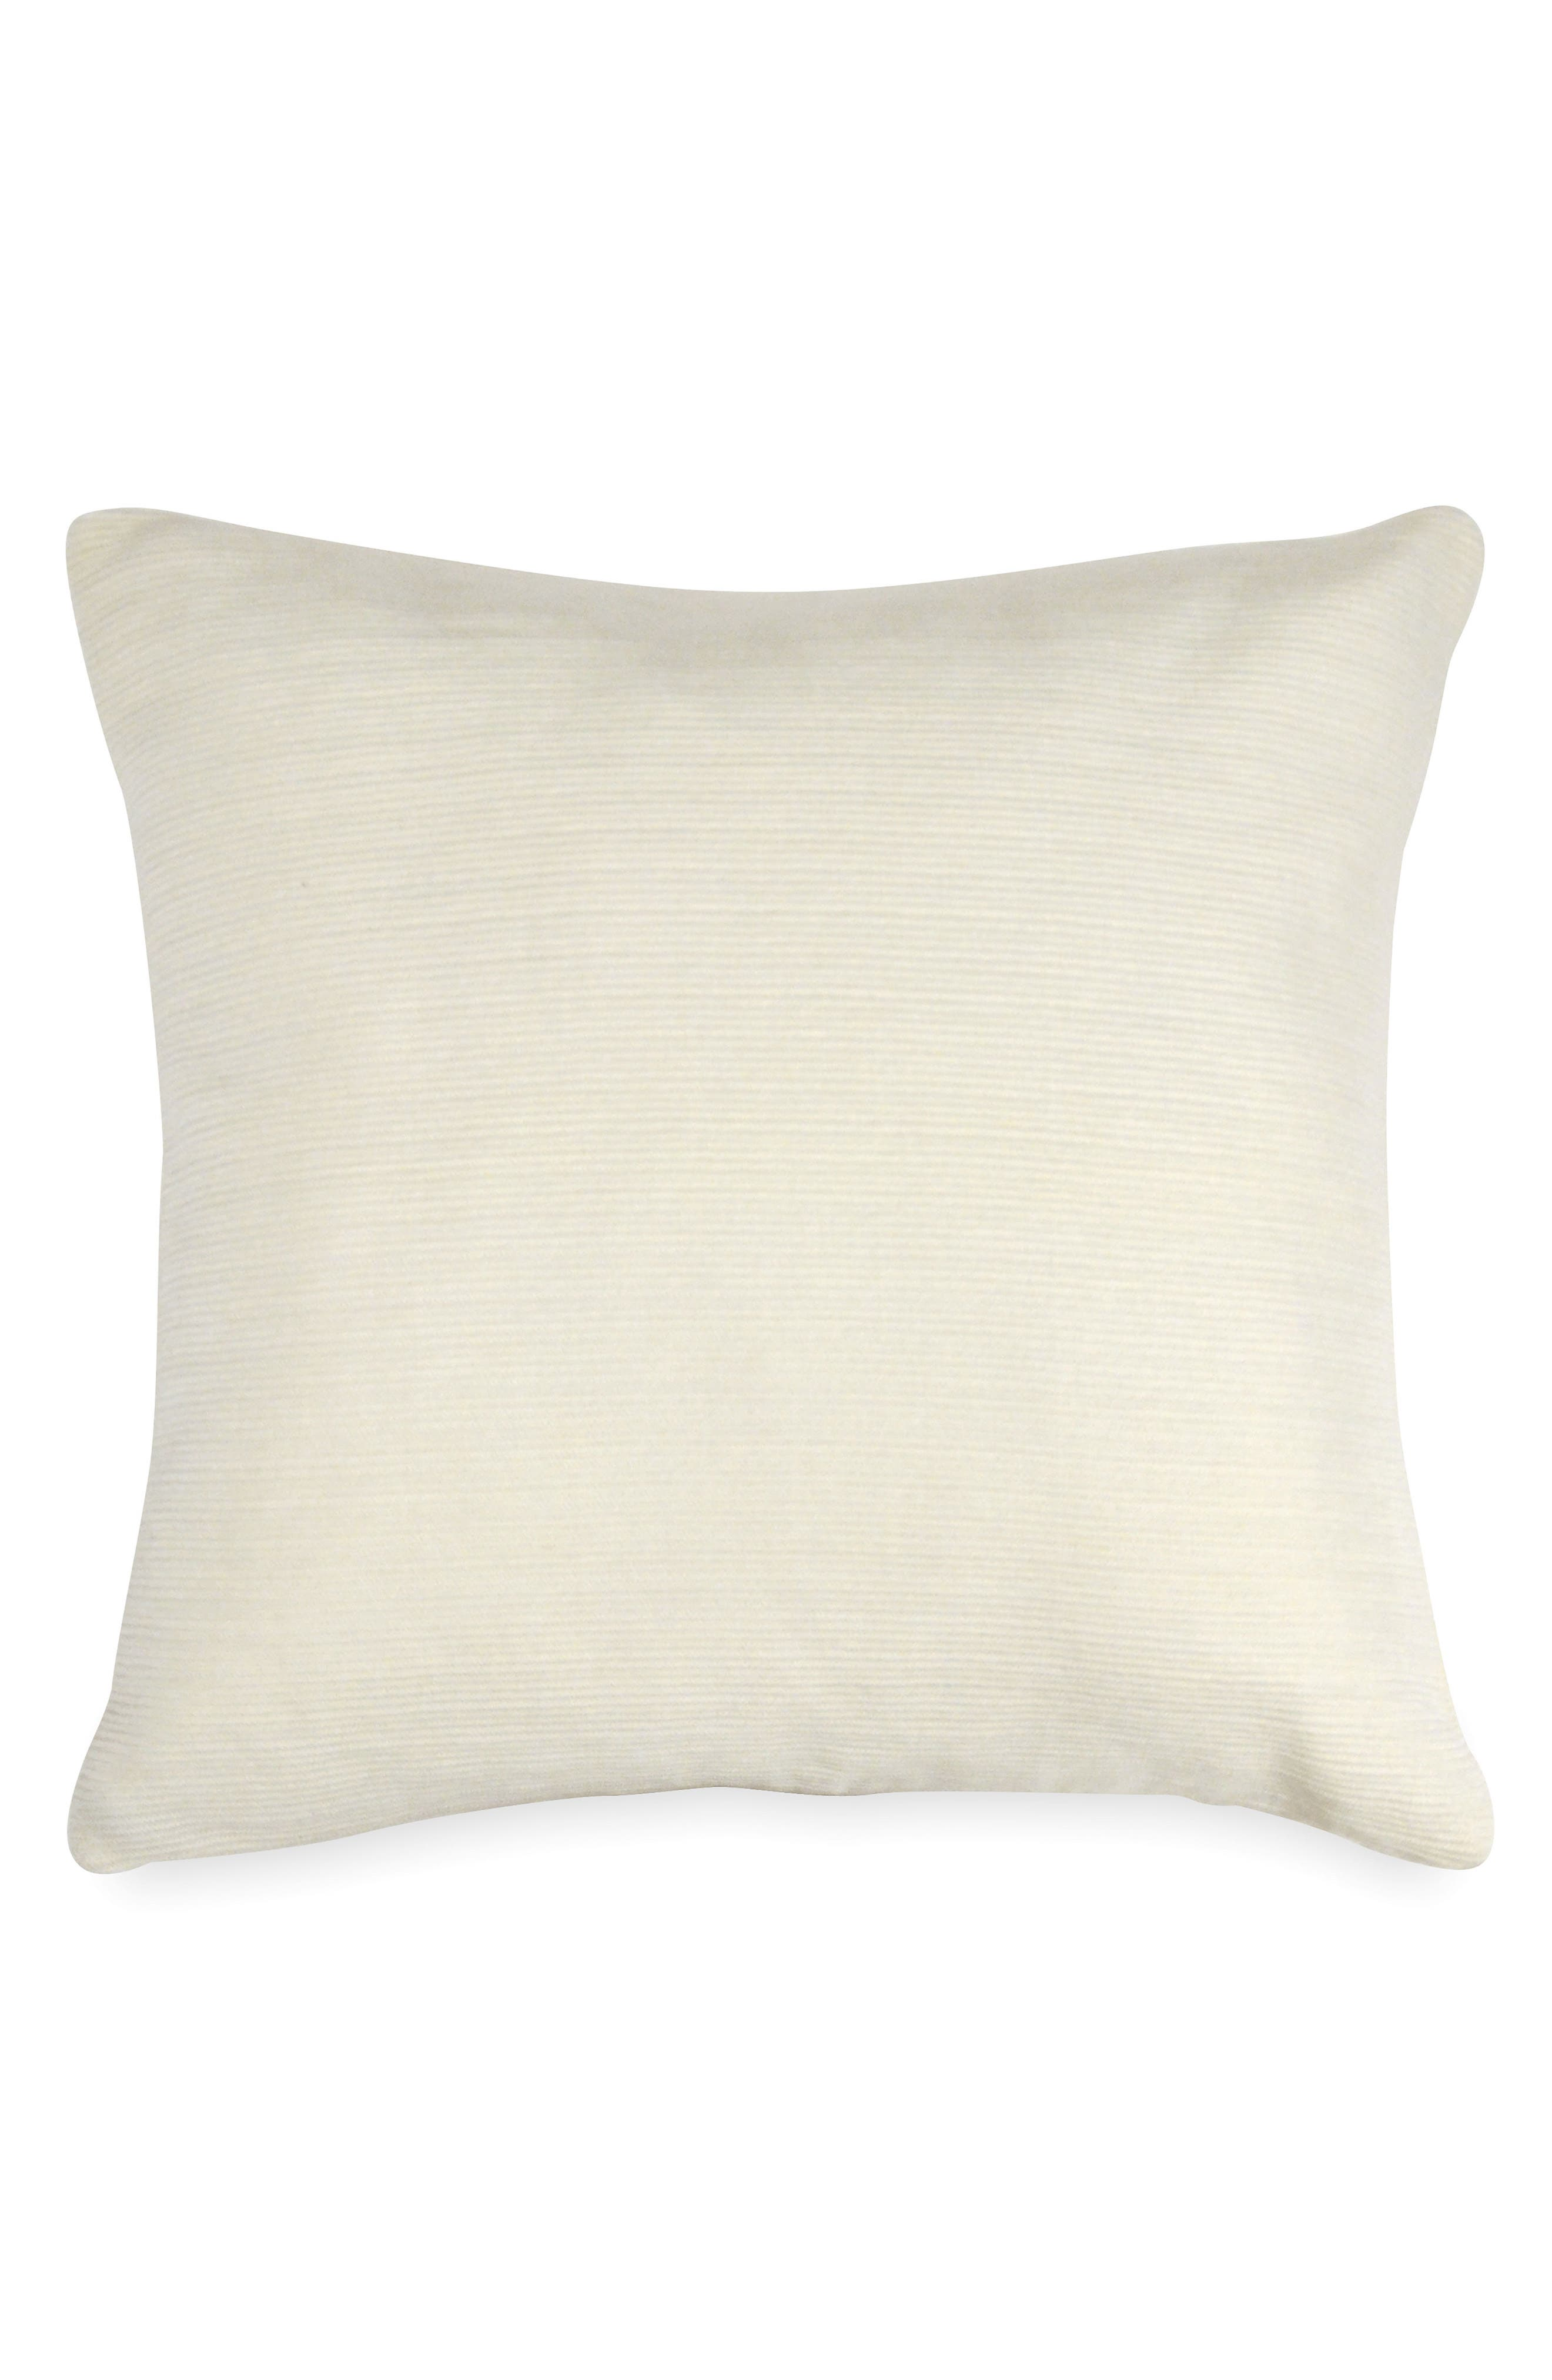 DKNY Motion Knit Accent Pillow